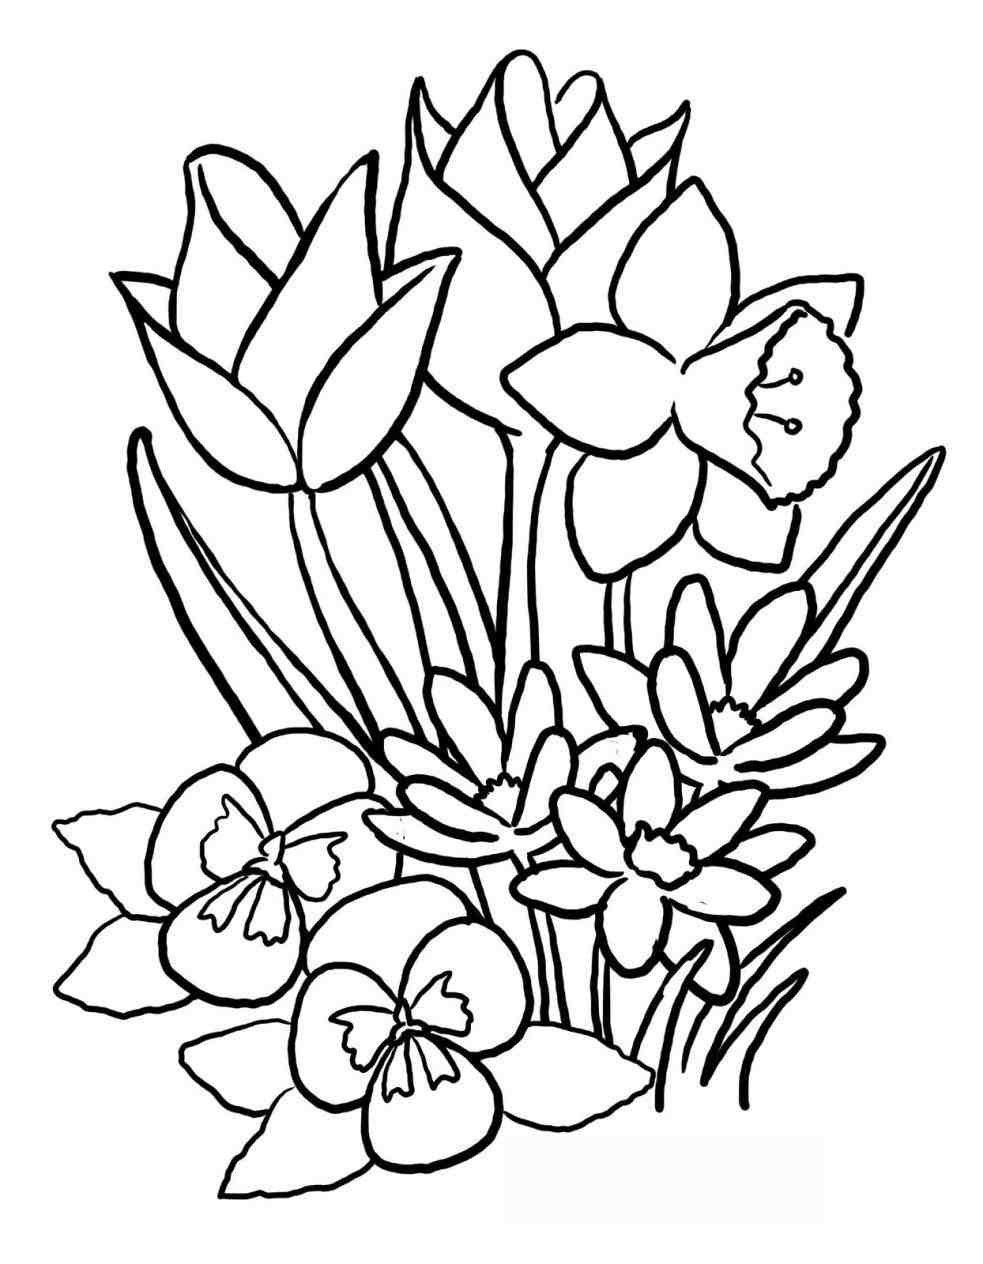 Hawaii flower drawing easy flowers healthy 983x1264 easy hawaiian flowers to draw step by step hawaii flower drawing at getdrawings free for personal use izmirmasajfo